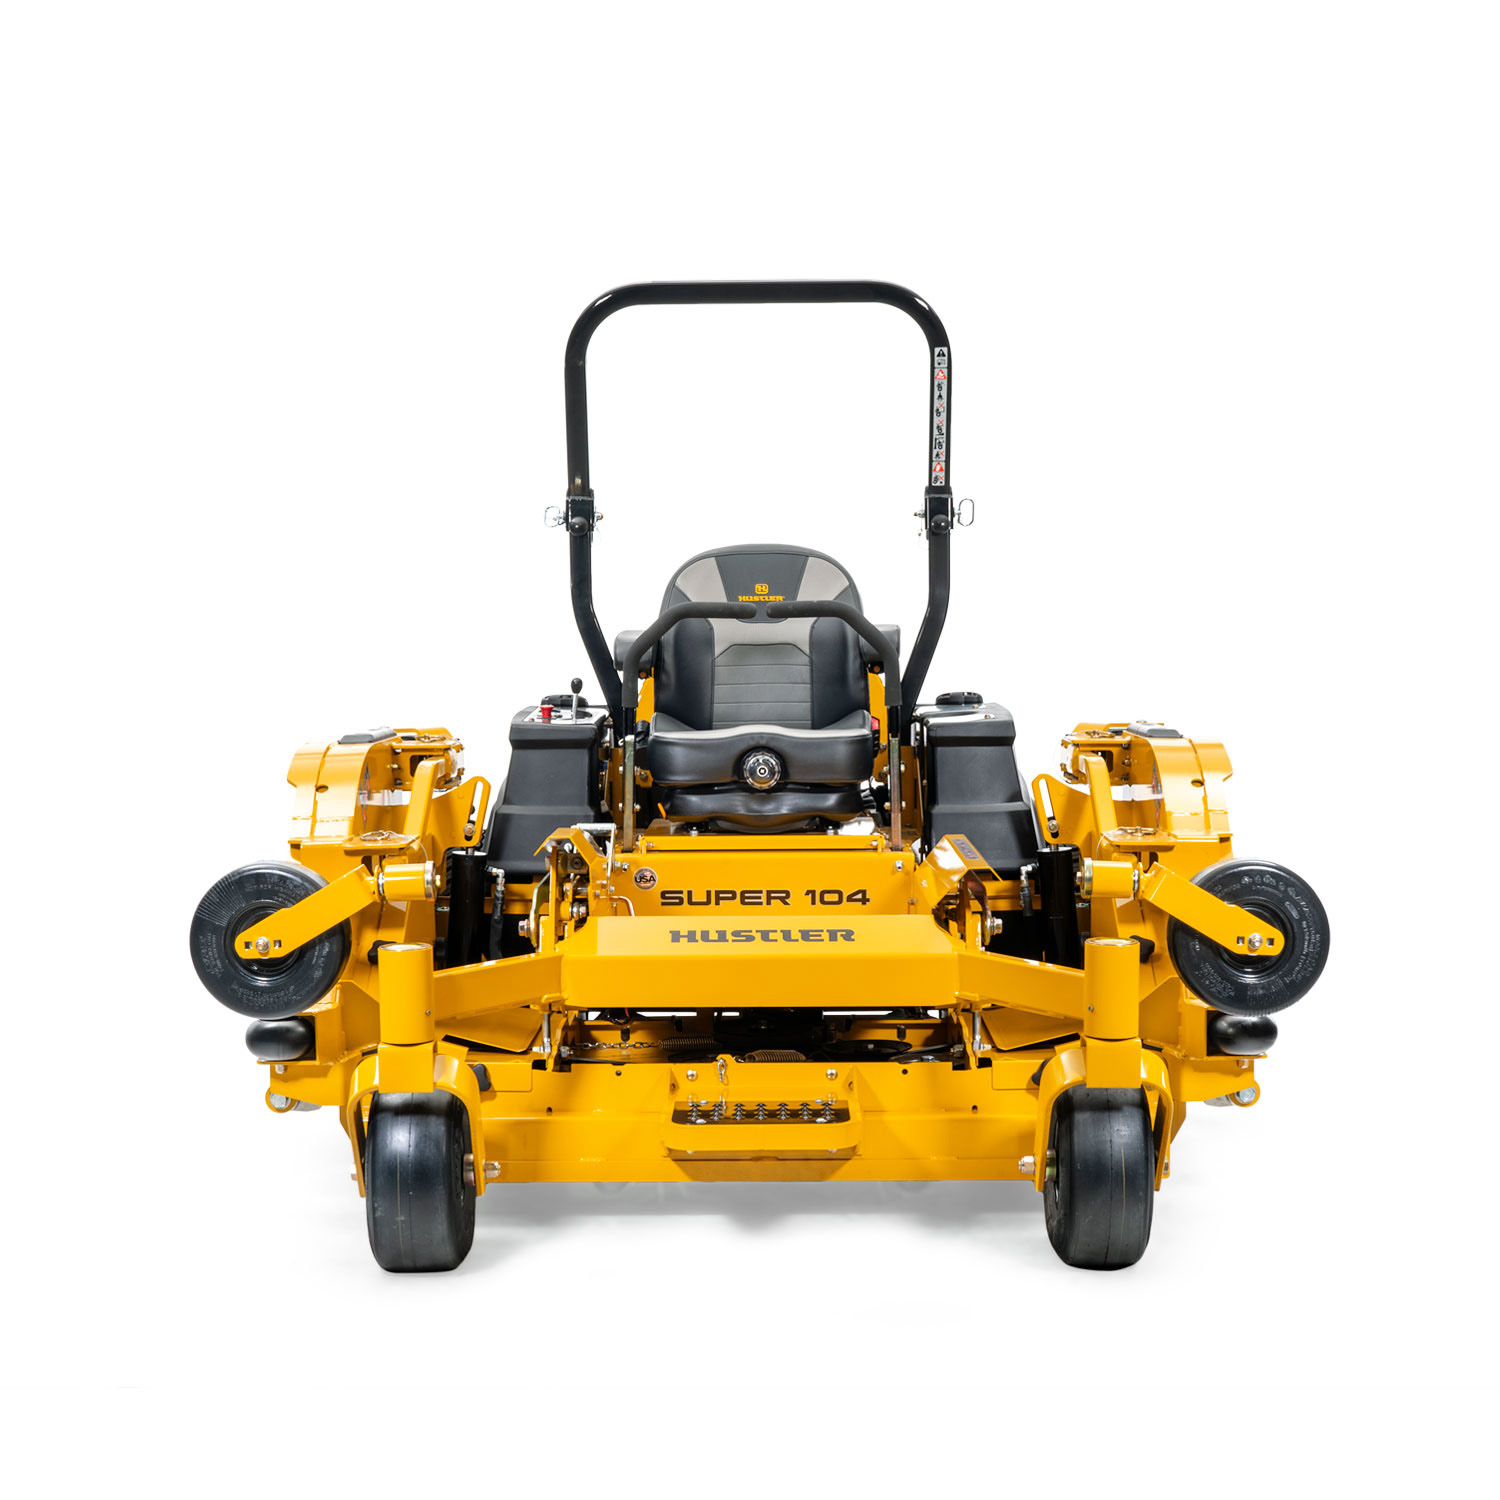 Image of the front of a yellow wide area mid-mount mower with folded up wing decks attached to the main deck